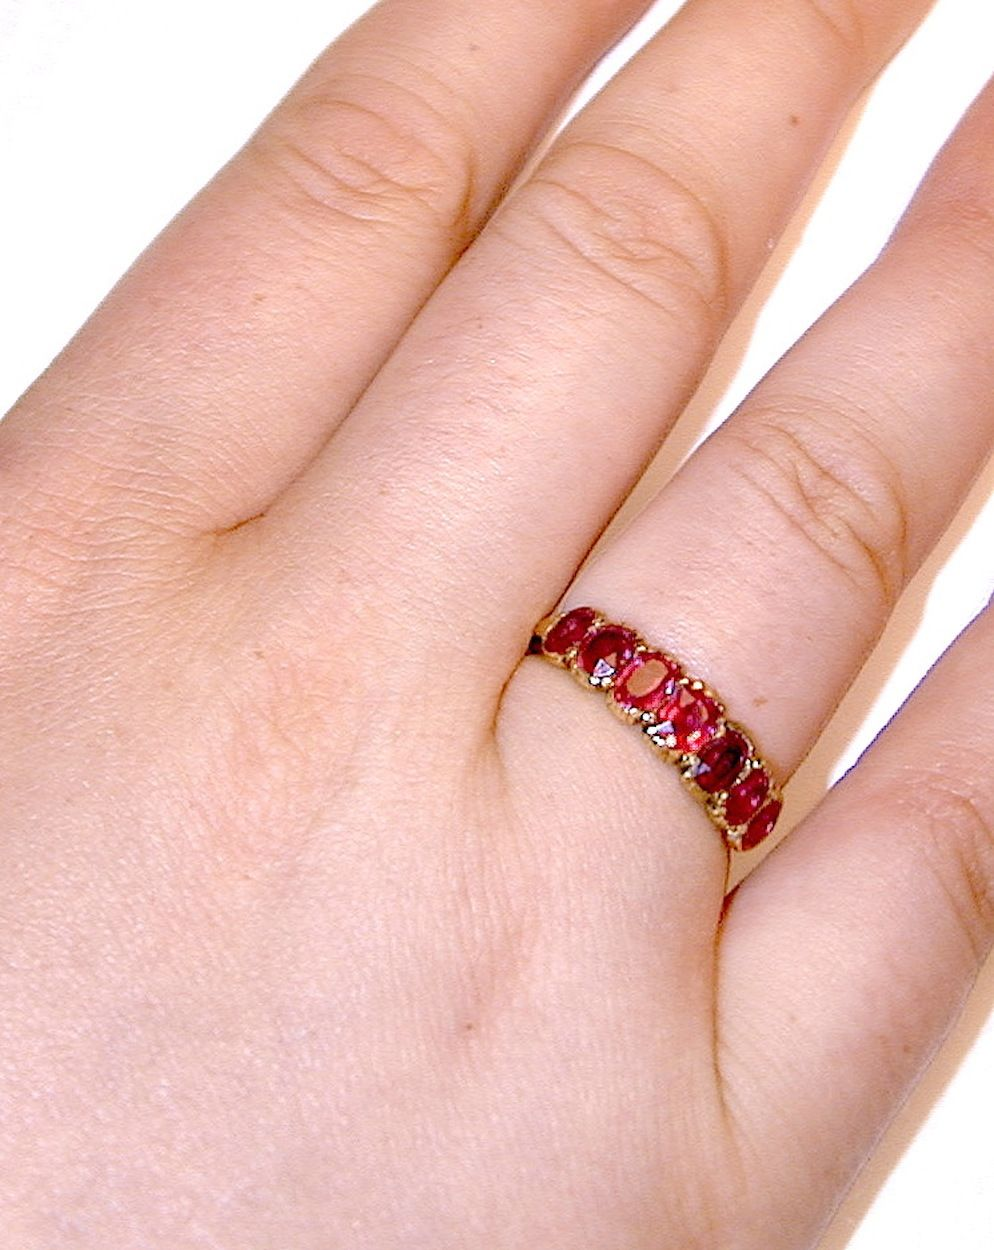 Antique Ruby Gold Ring | Band rings, Gold rings and Ring